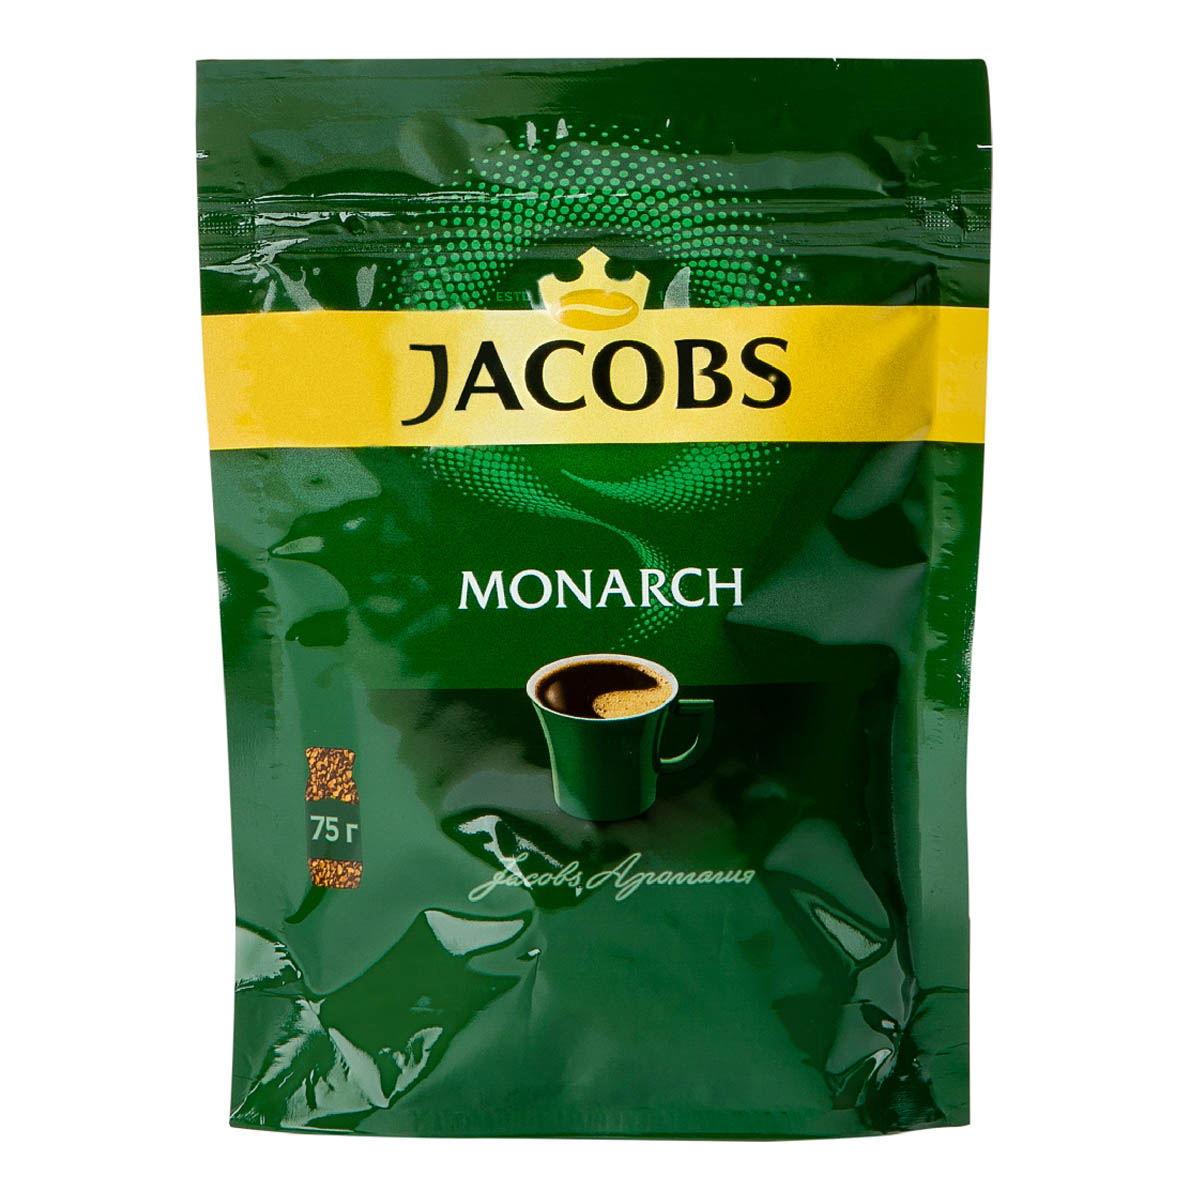 Jacobs Monarch растворимый